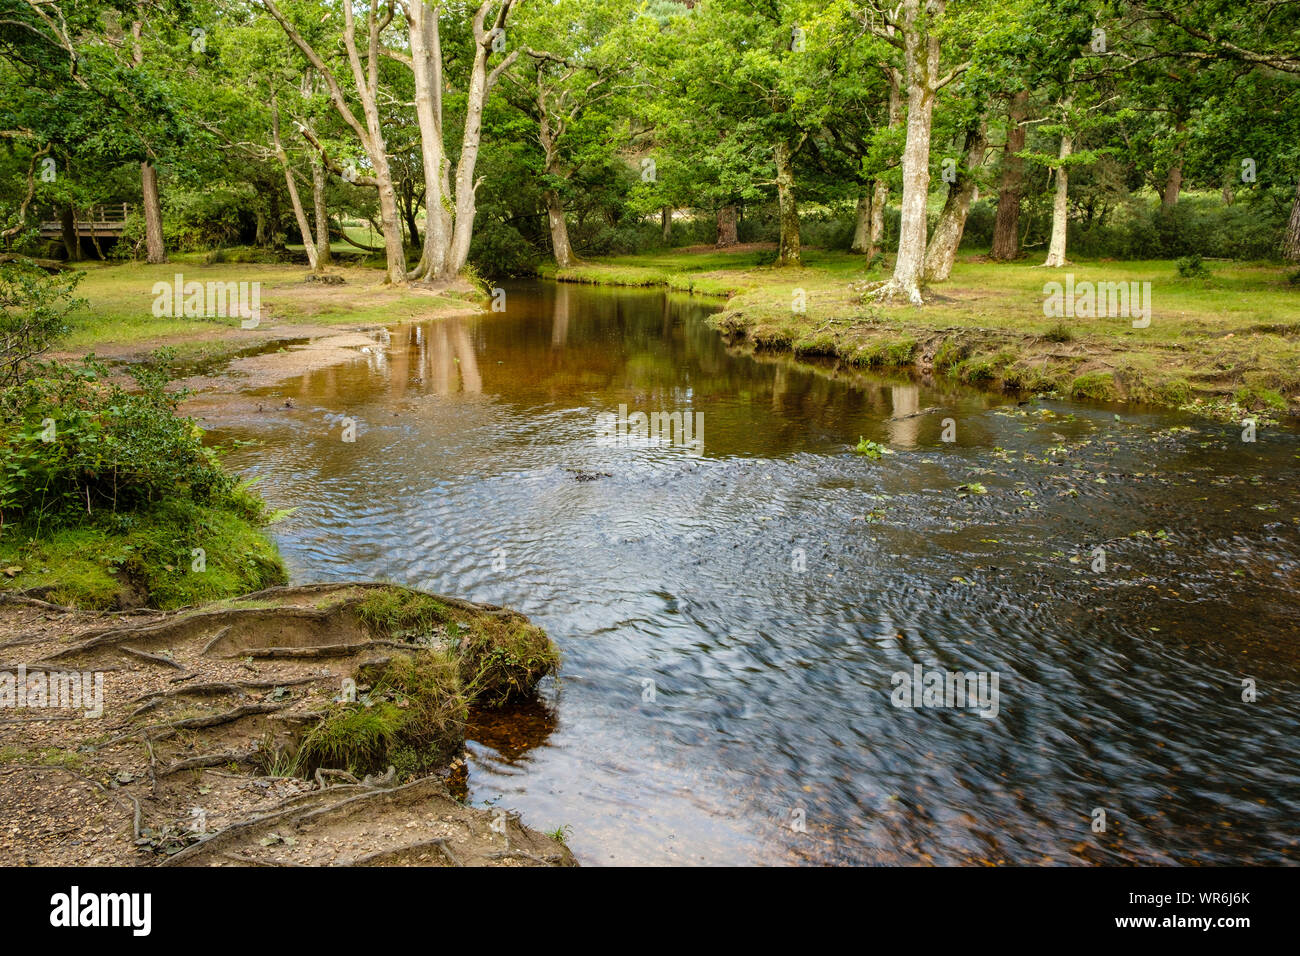 New Forest, Ober Water River at Puttles Bridge from Rhinefield Road, Hampshire, England, UK. Stock Photo